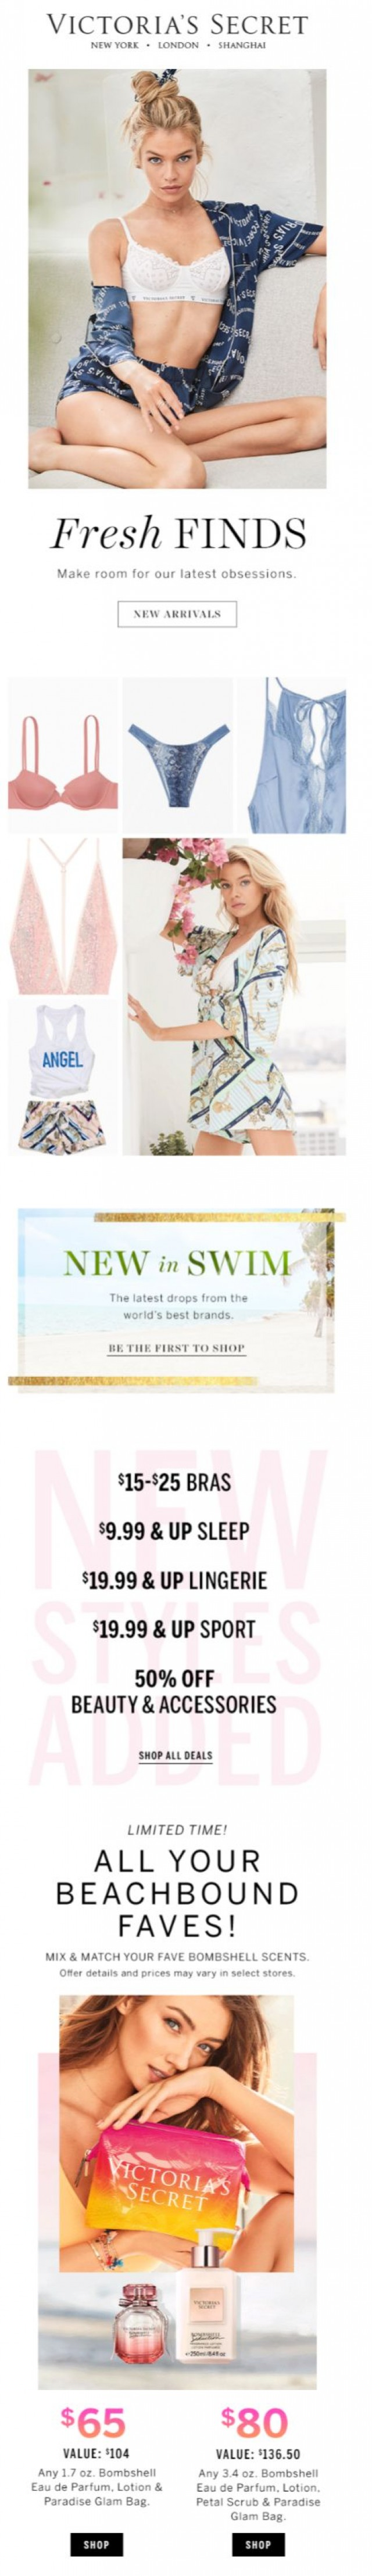 Coupon for: Victoria's Secret - Check out these NEW ARRIVALS